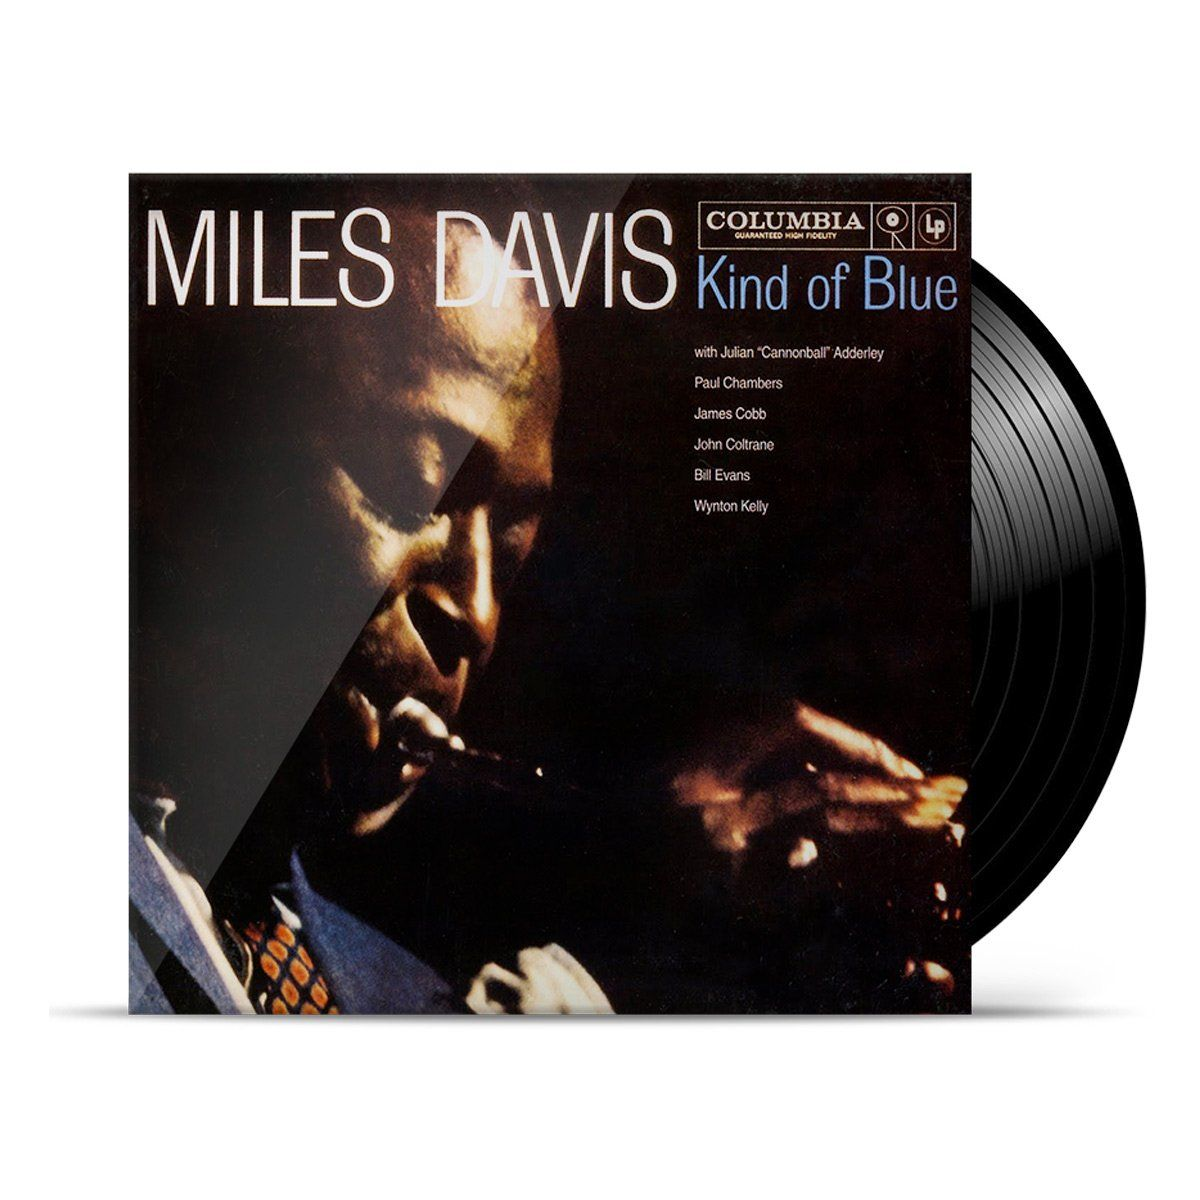 LP Miles Davis Kind of Blue